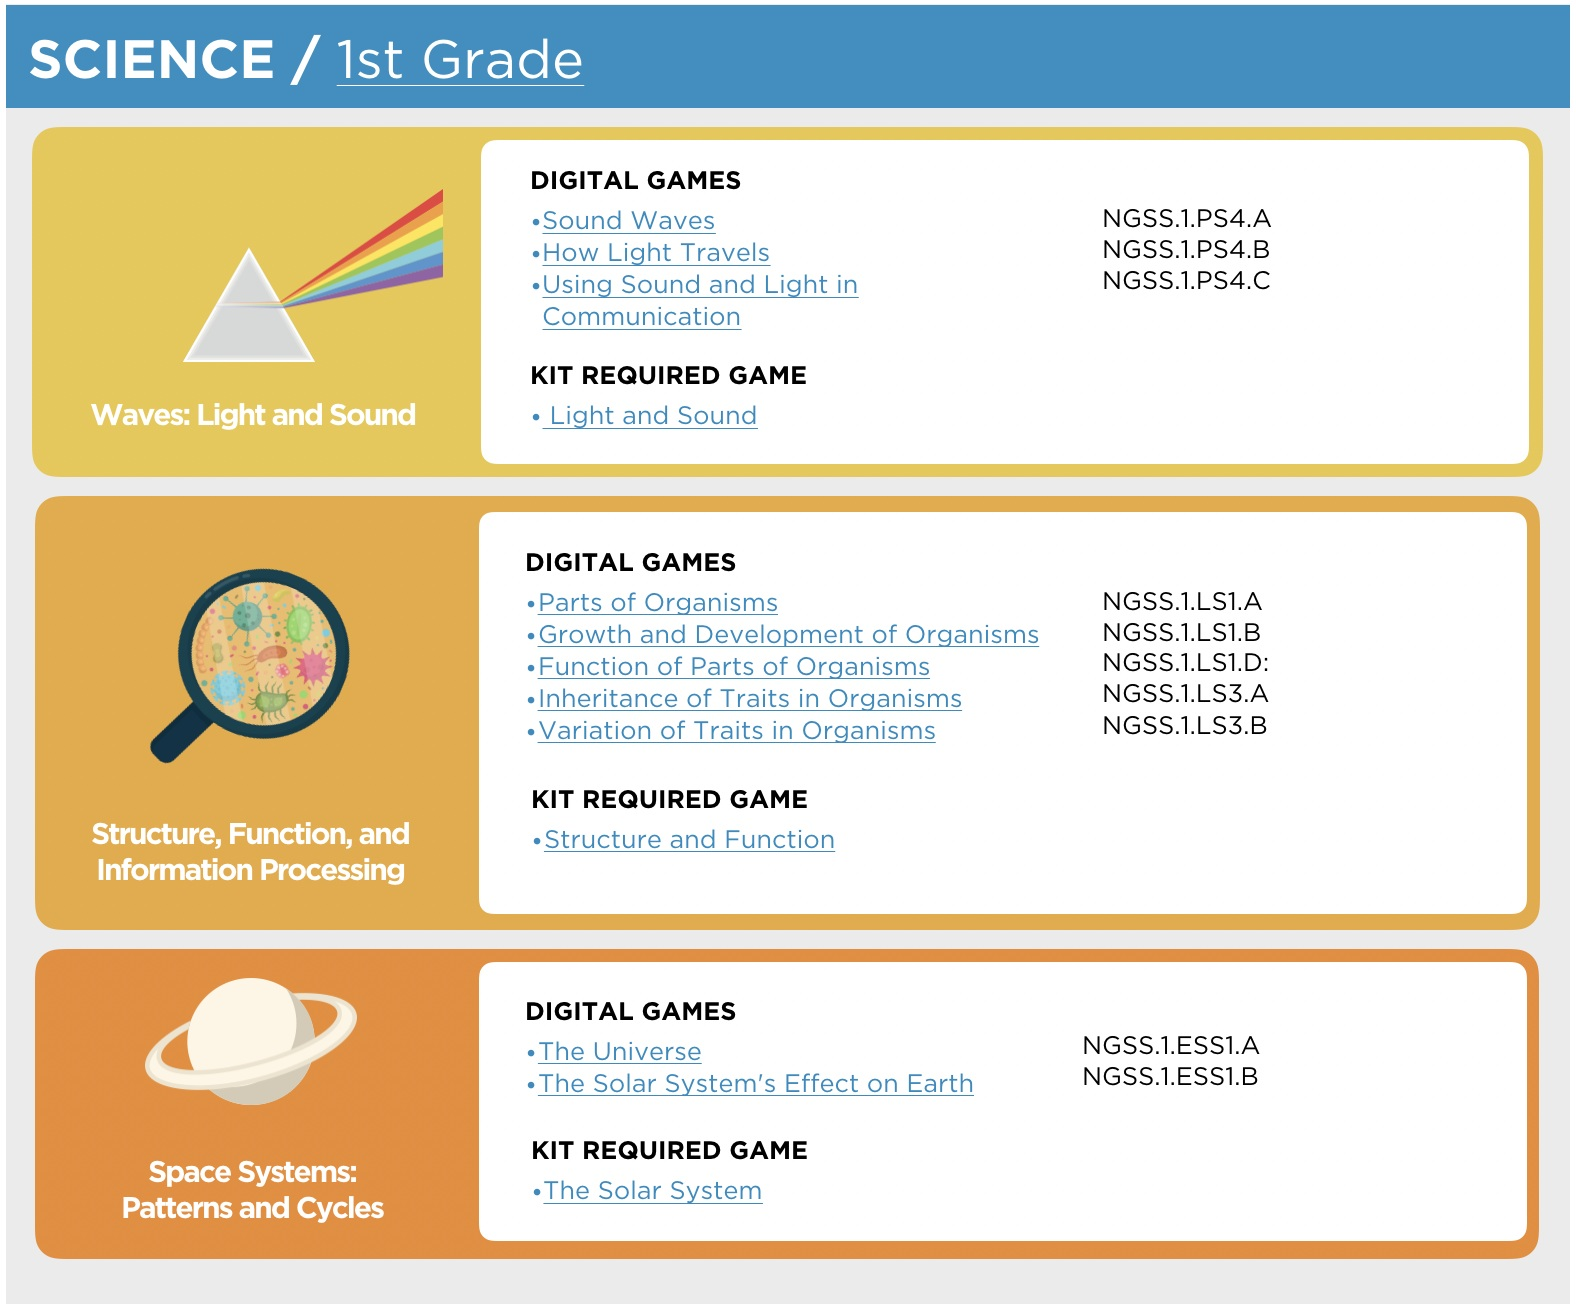 Example of 1st Grade Science Game Page